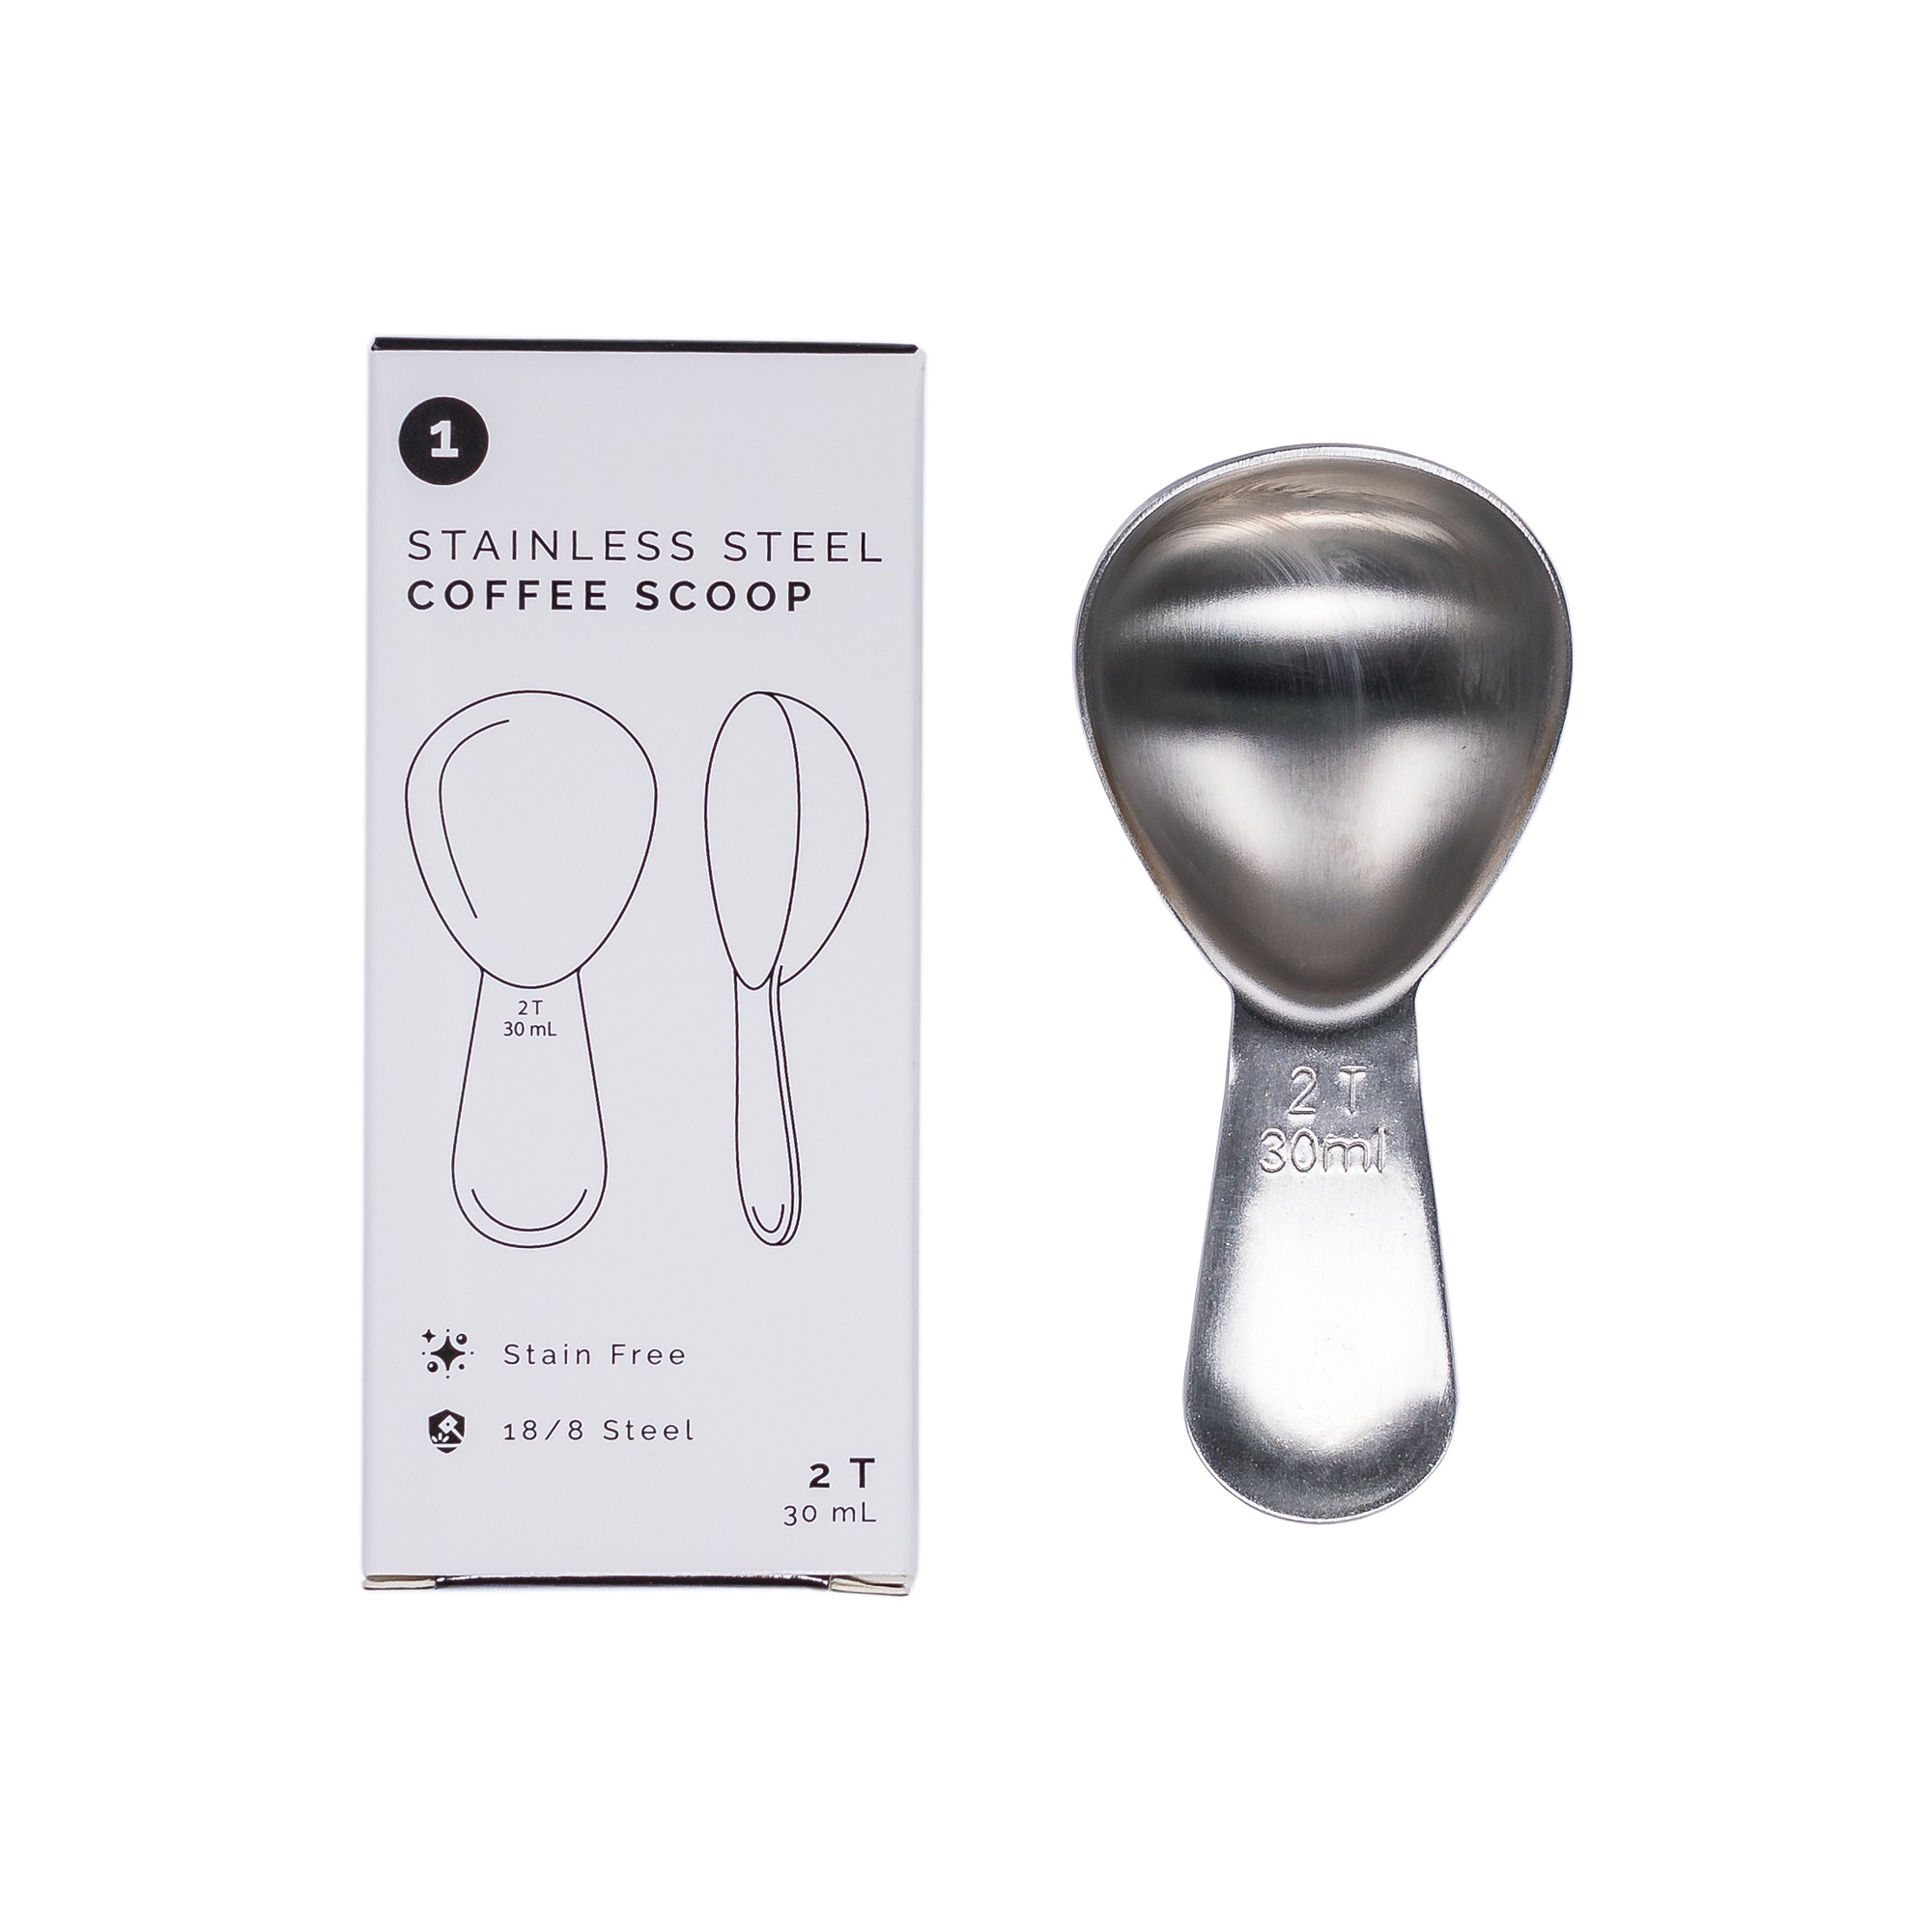 photo of stainless steel coffee scoop next to its retail box